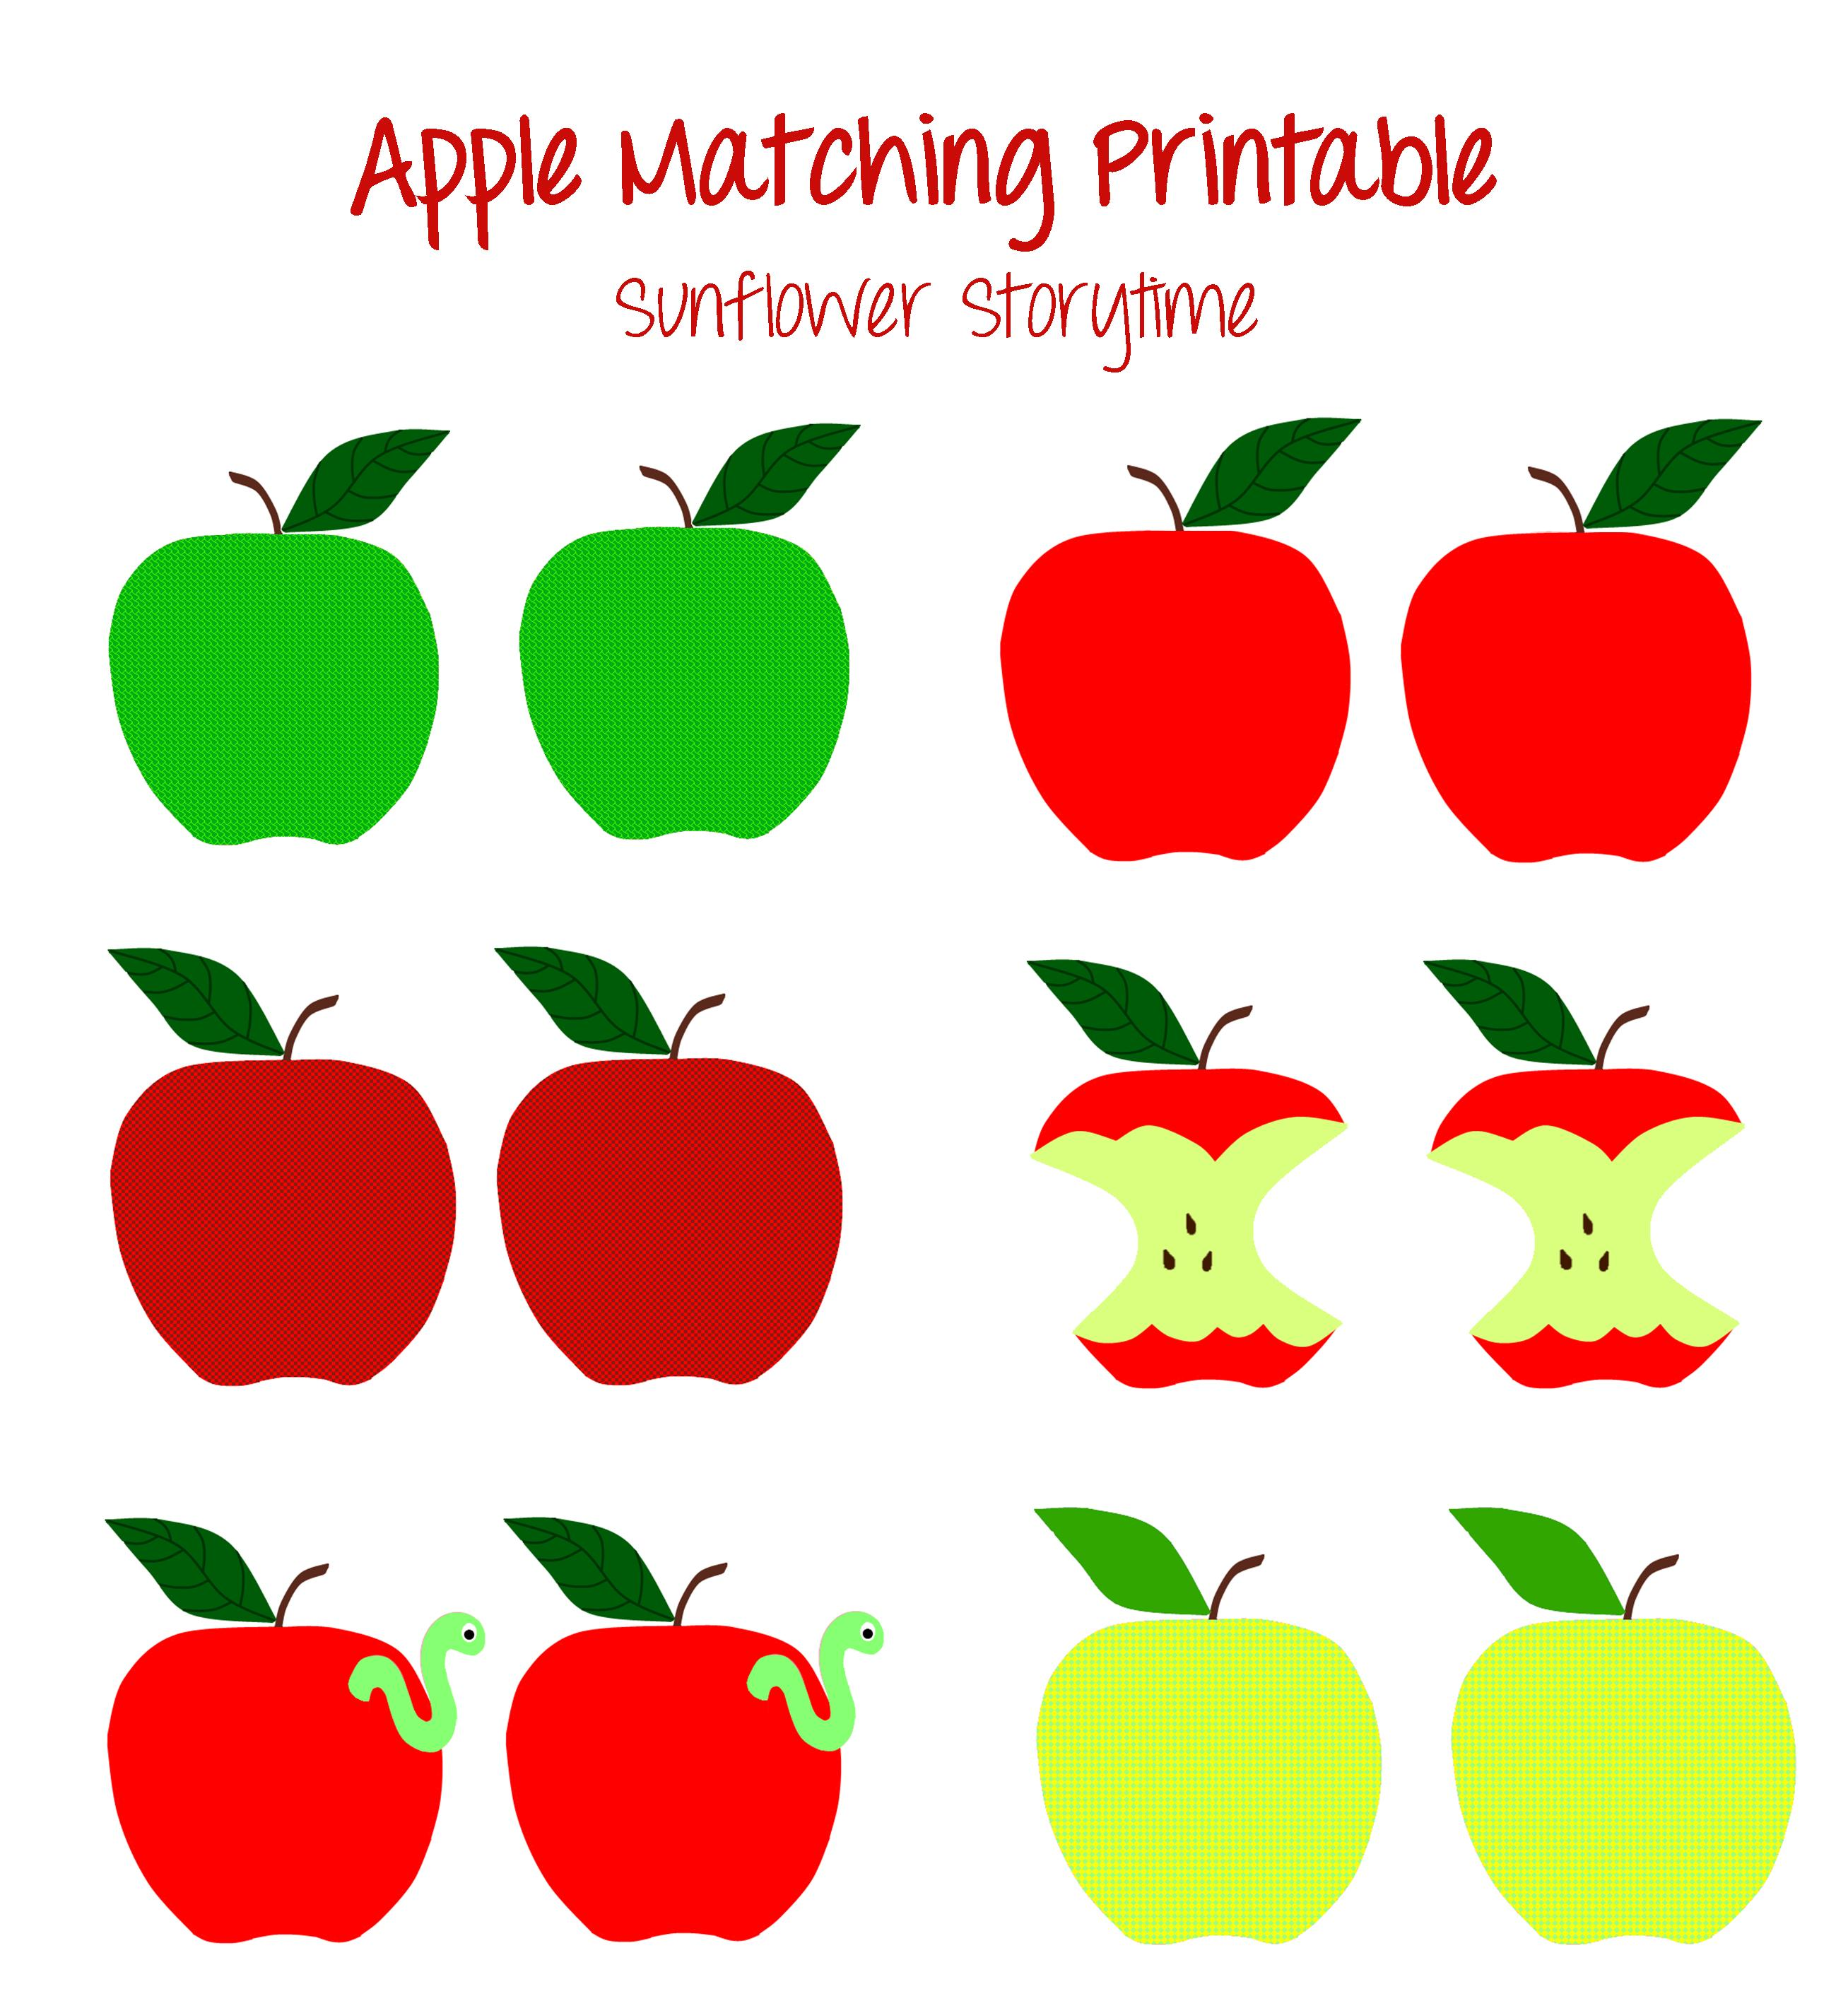 graphic about Apple Printable named Apple Matching Printable Sunflower Storytime